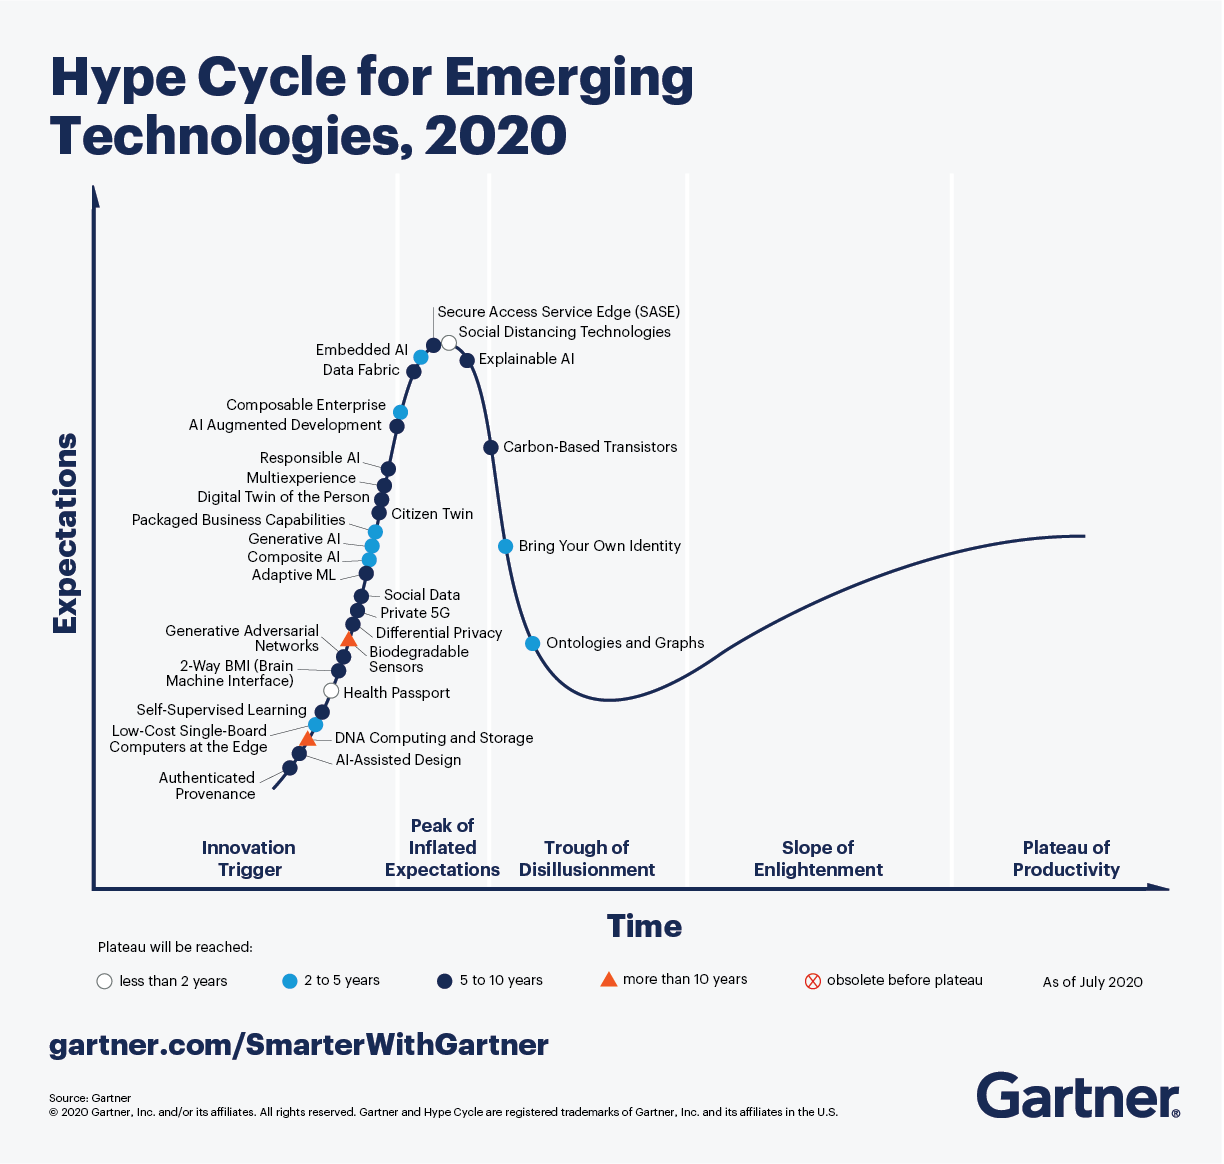 The Gartner Hype Cycle for Emerging Technologies, 2020 features five trends and 30 technologies that will drive significant change over the next five to ten years.